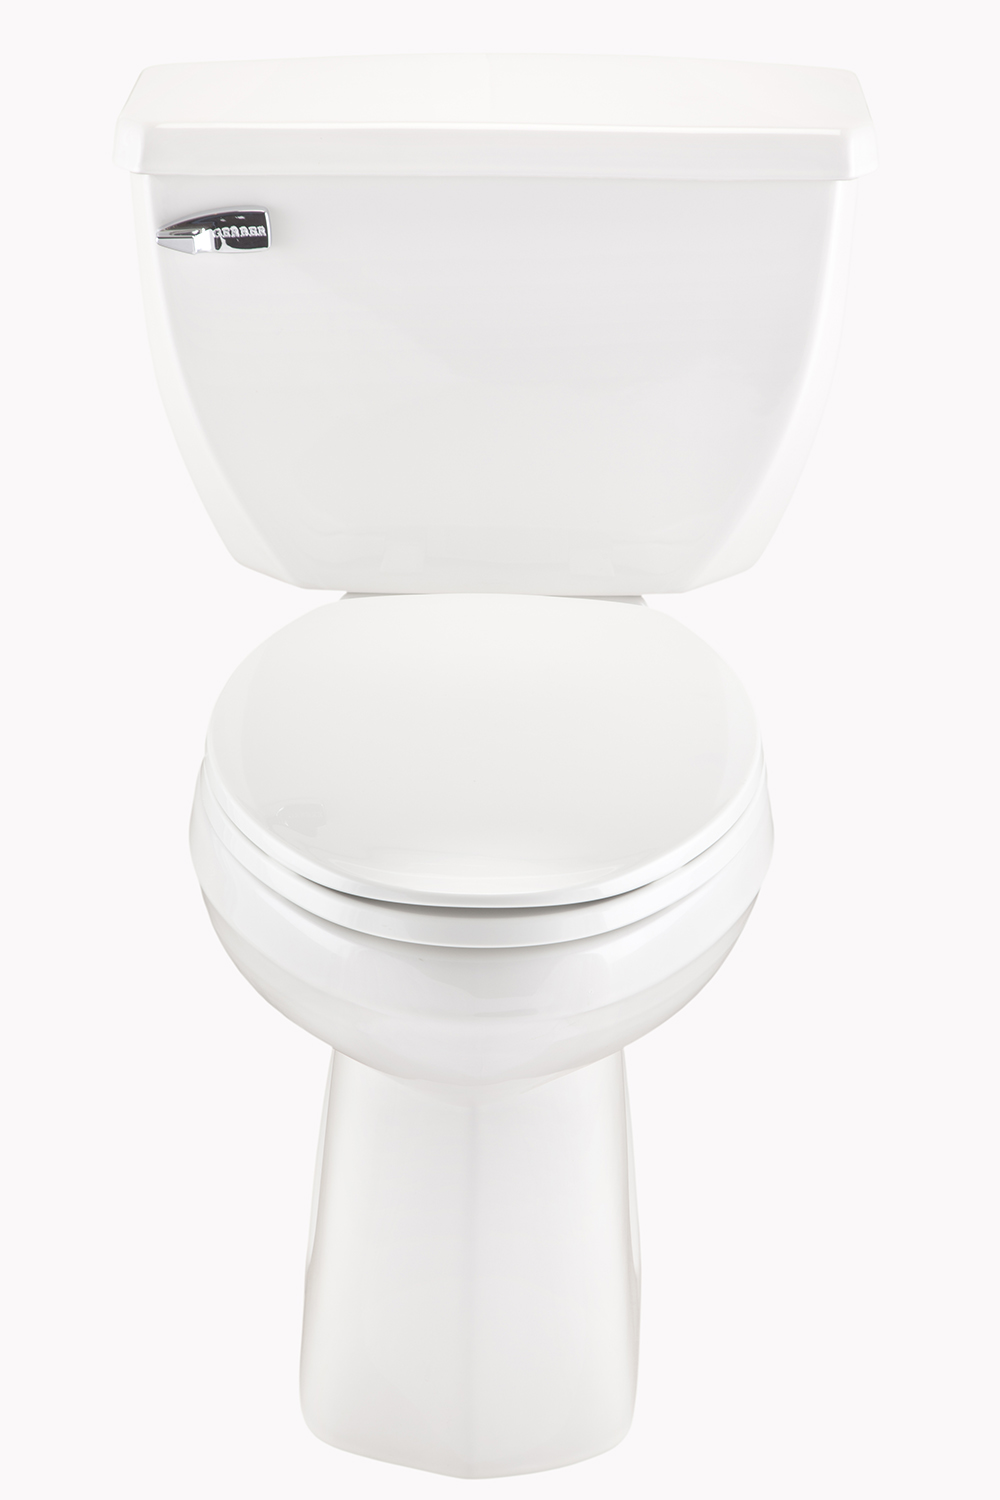 Gerber Power Flush Toilet Price